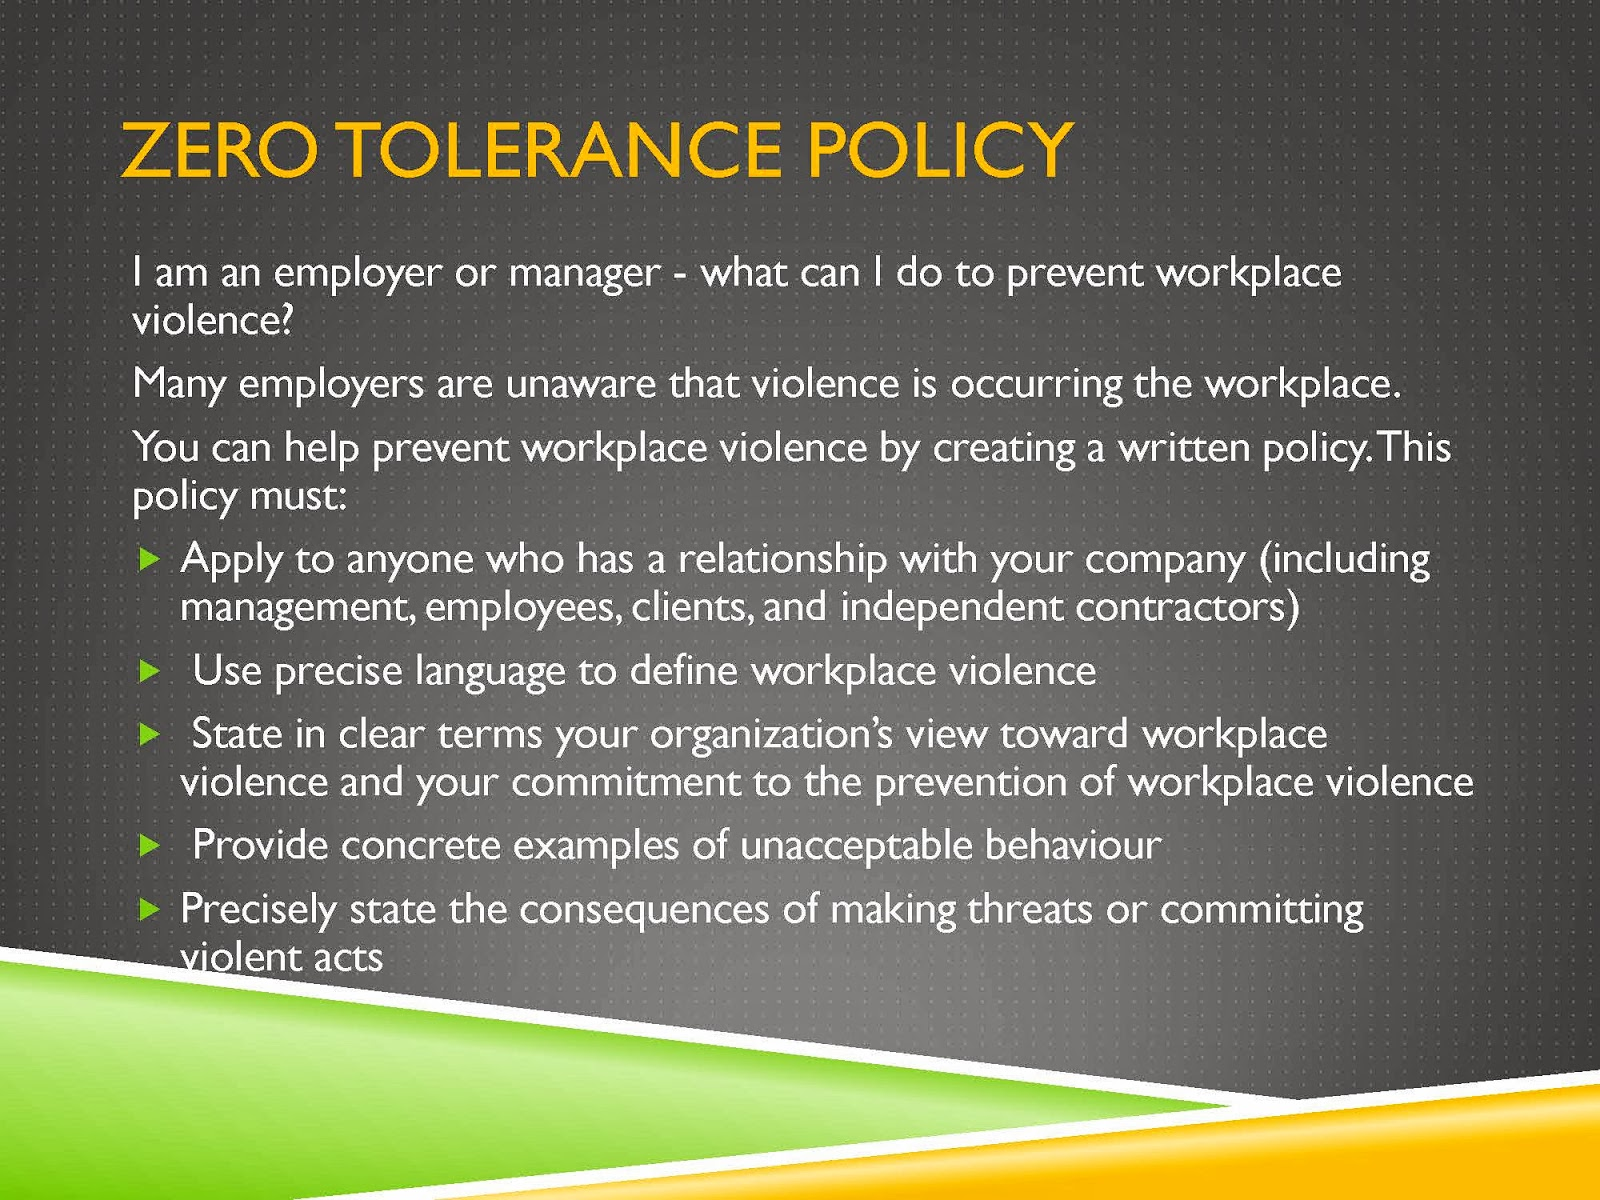 zerotolerance policy in the workplace definition